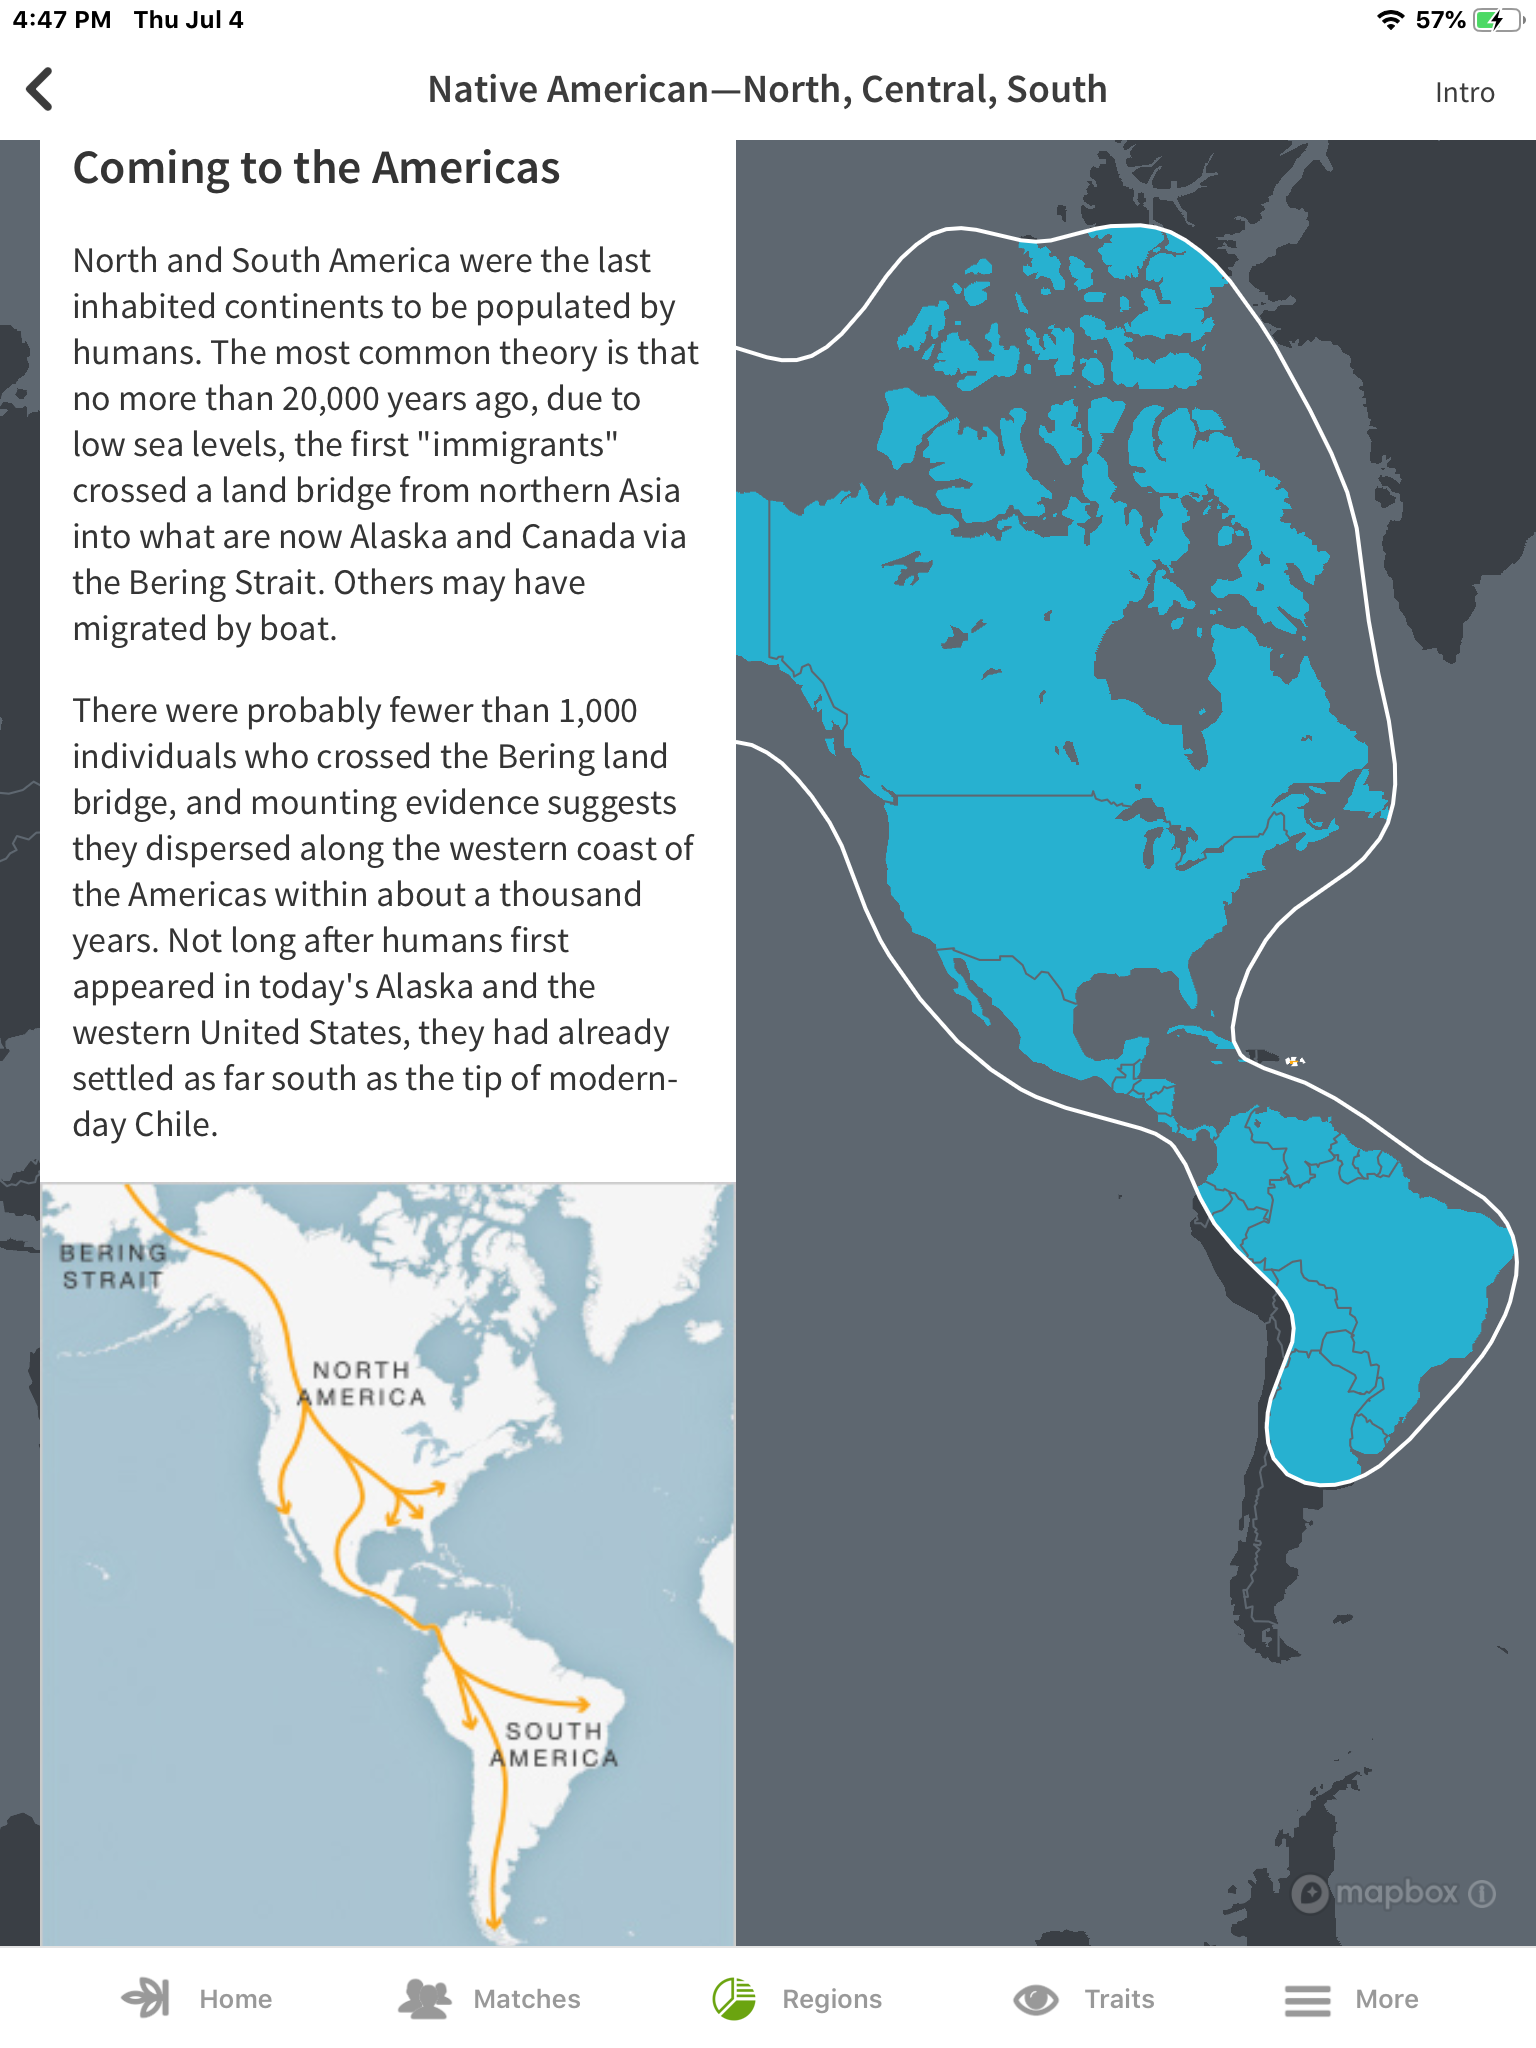 Native Americans migrated from Europe and Asia